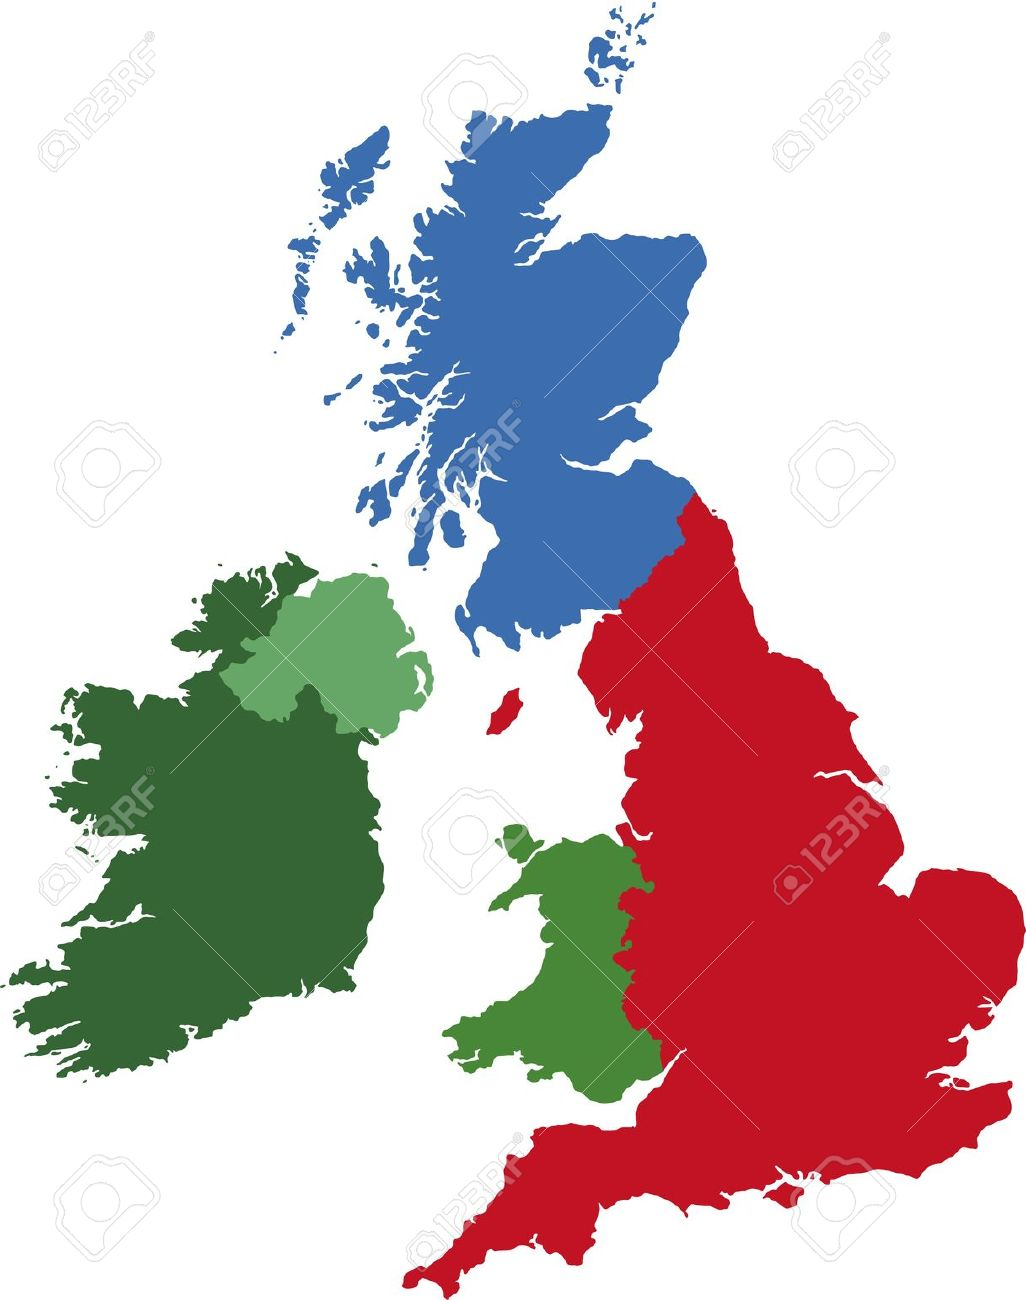 Clipart england map.